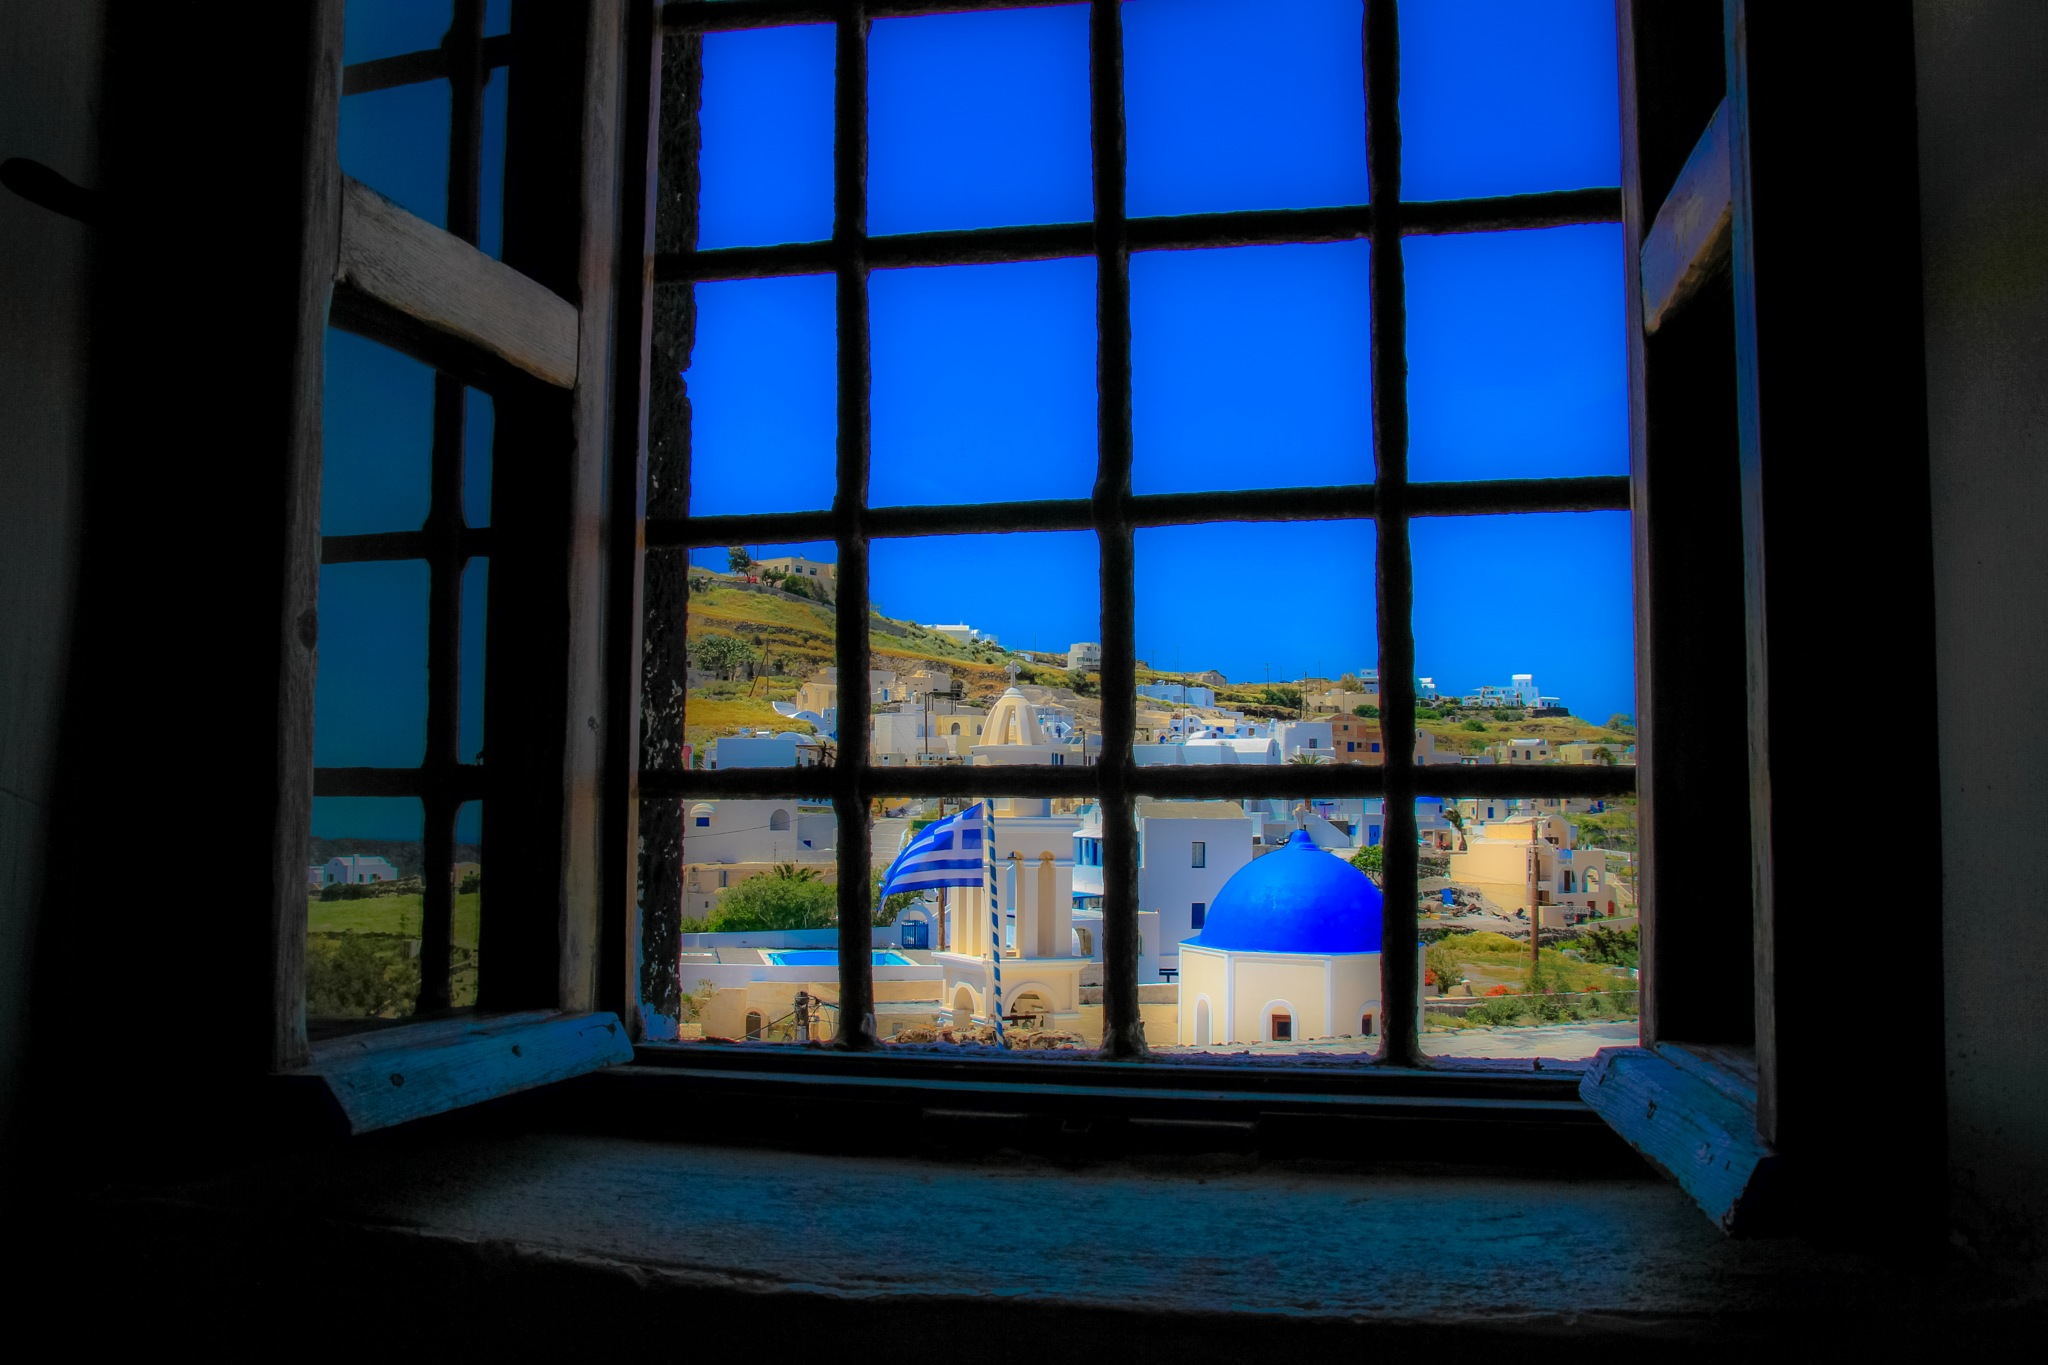 Domes through the old castle window  by Martin Roper